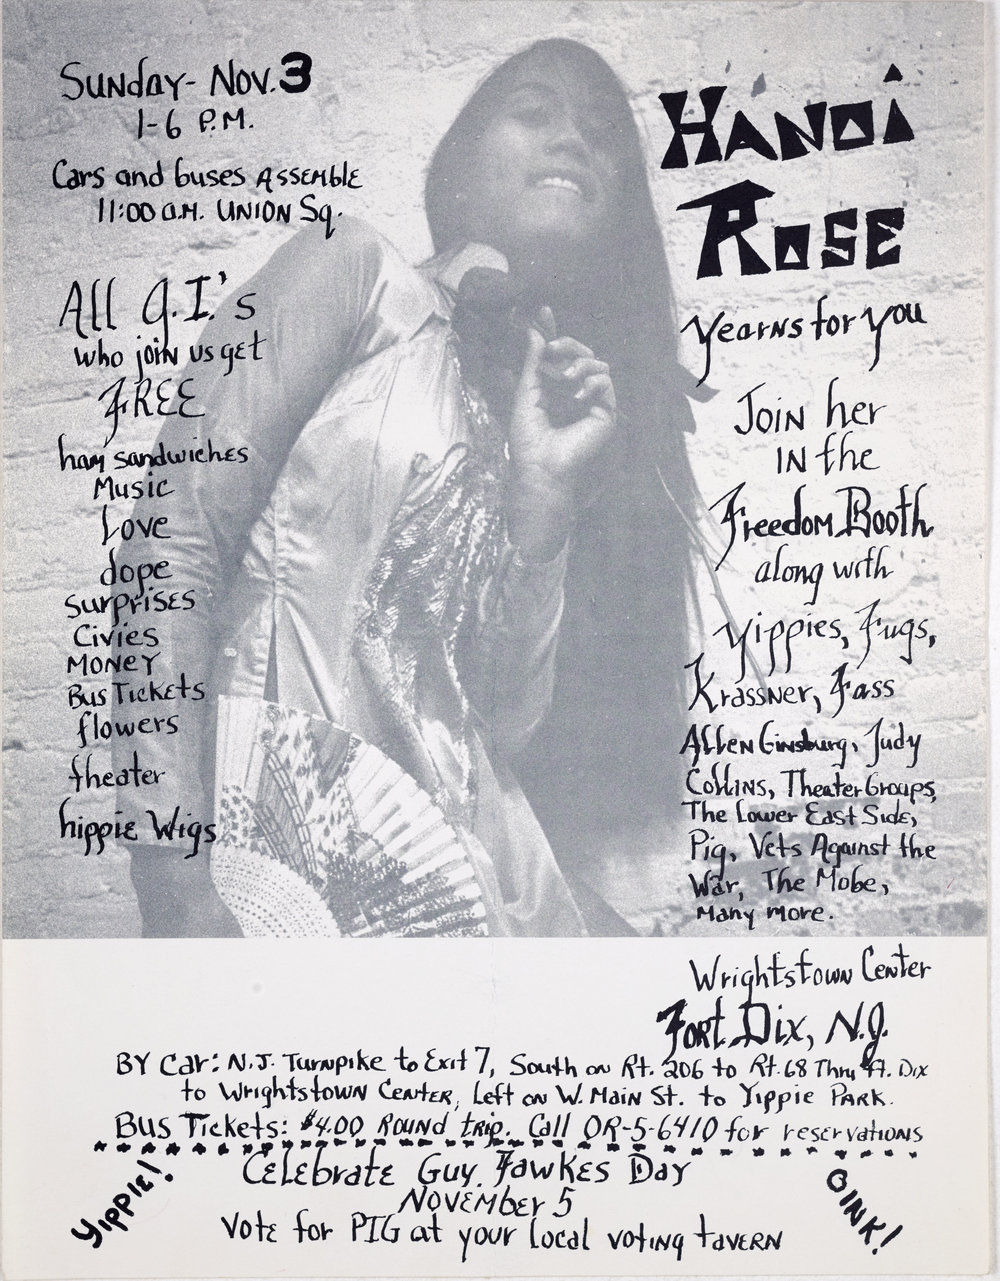 Hanoi Rose Yearns for You flyer, November 1968  - The anti-war movement attracted a cross-section of activists including musicians, poets, and artists. This flyer illustrates the social component of the movement. Fort Dix, in New Jersey was an Army boot camp. The base offered Vietnam-specific combat training and included a mock Vietnamese village.